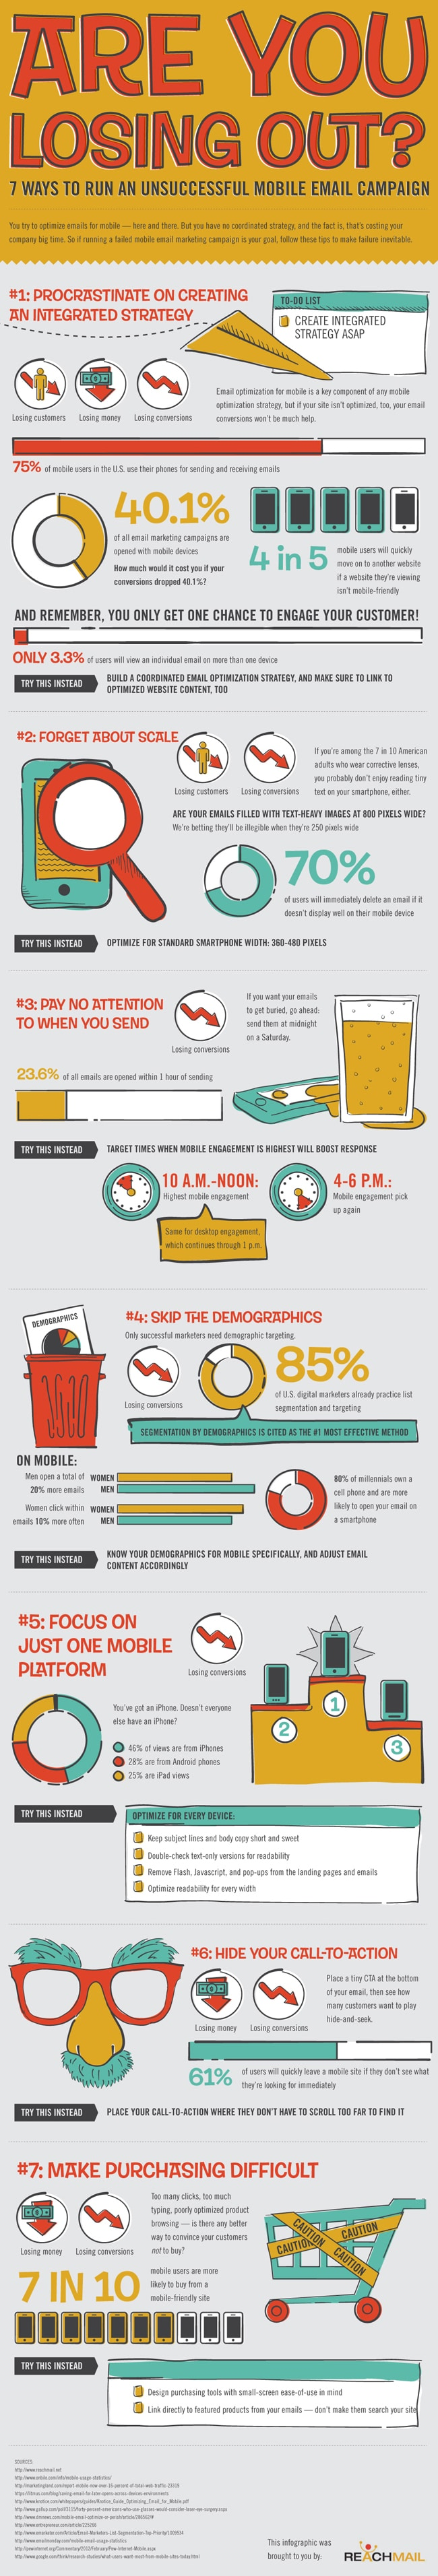 mobile-email-campaign-infographic